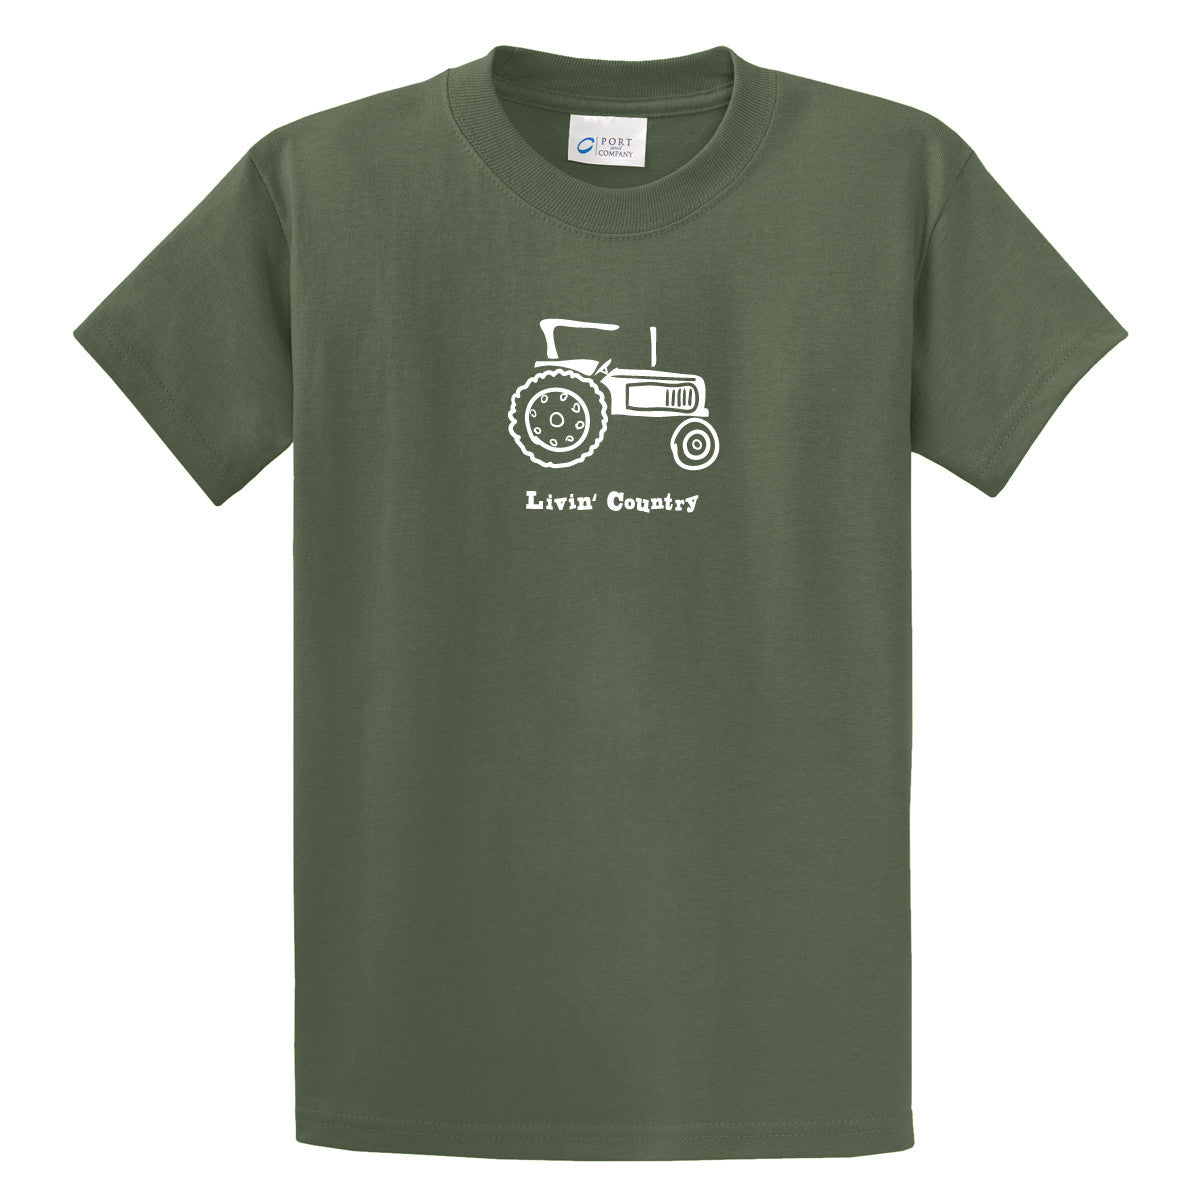 Adult Livin' Country Tractor T-shirt - Livin' Country Apparel & Accessories  - 1